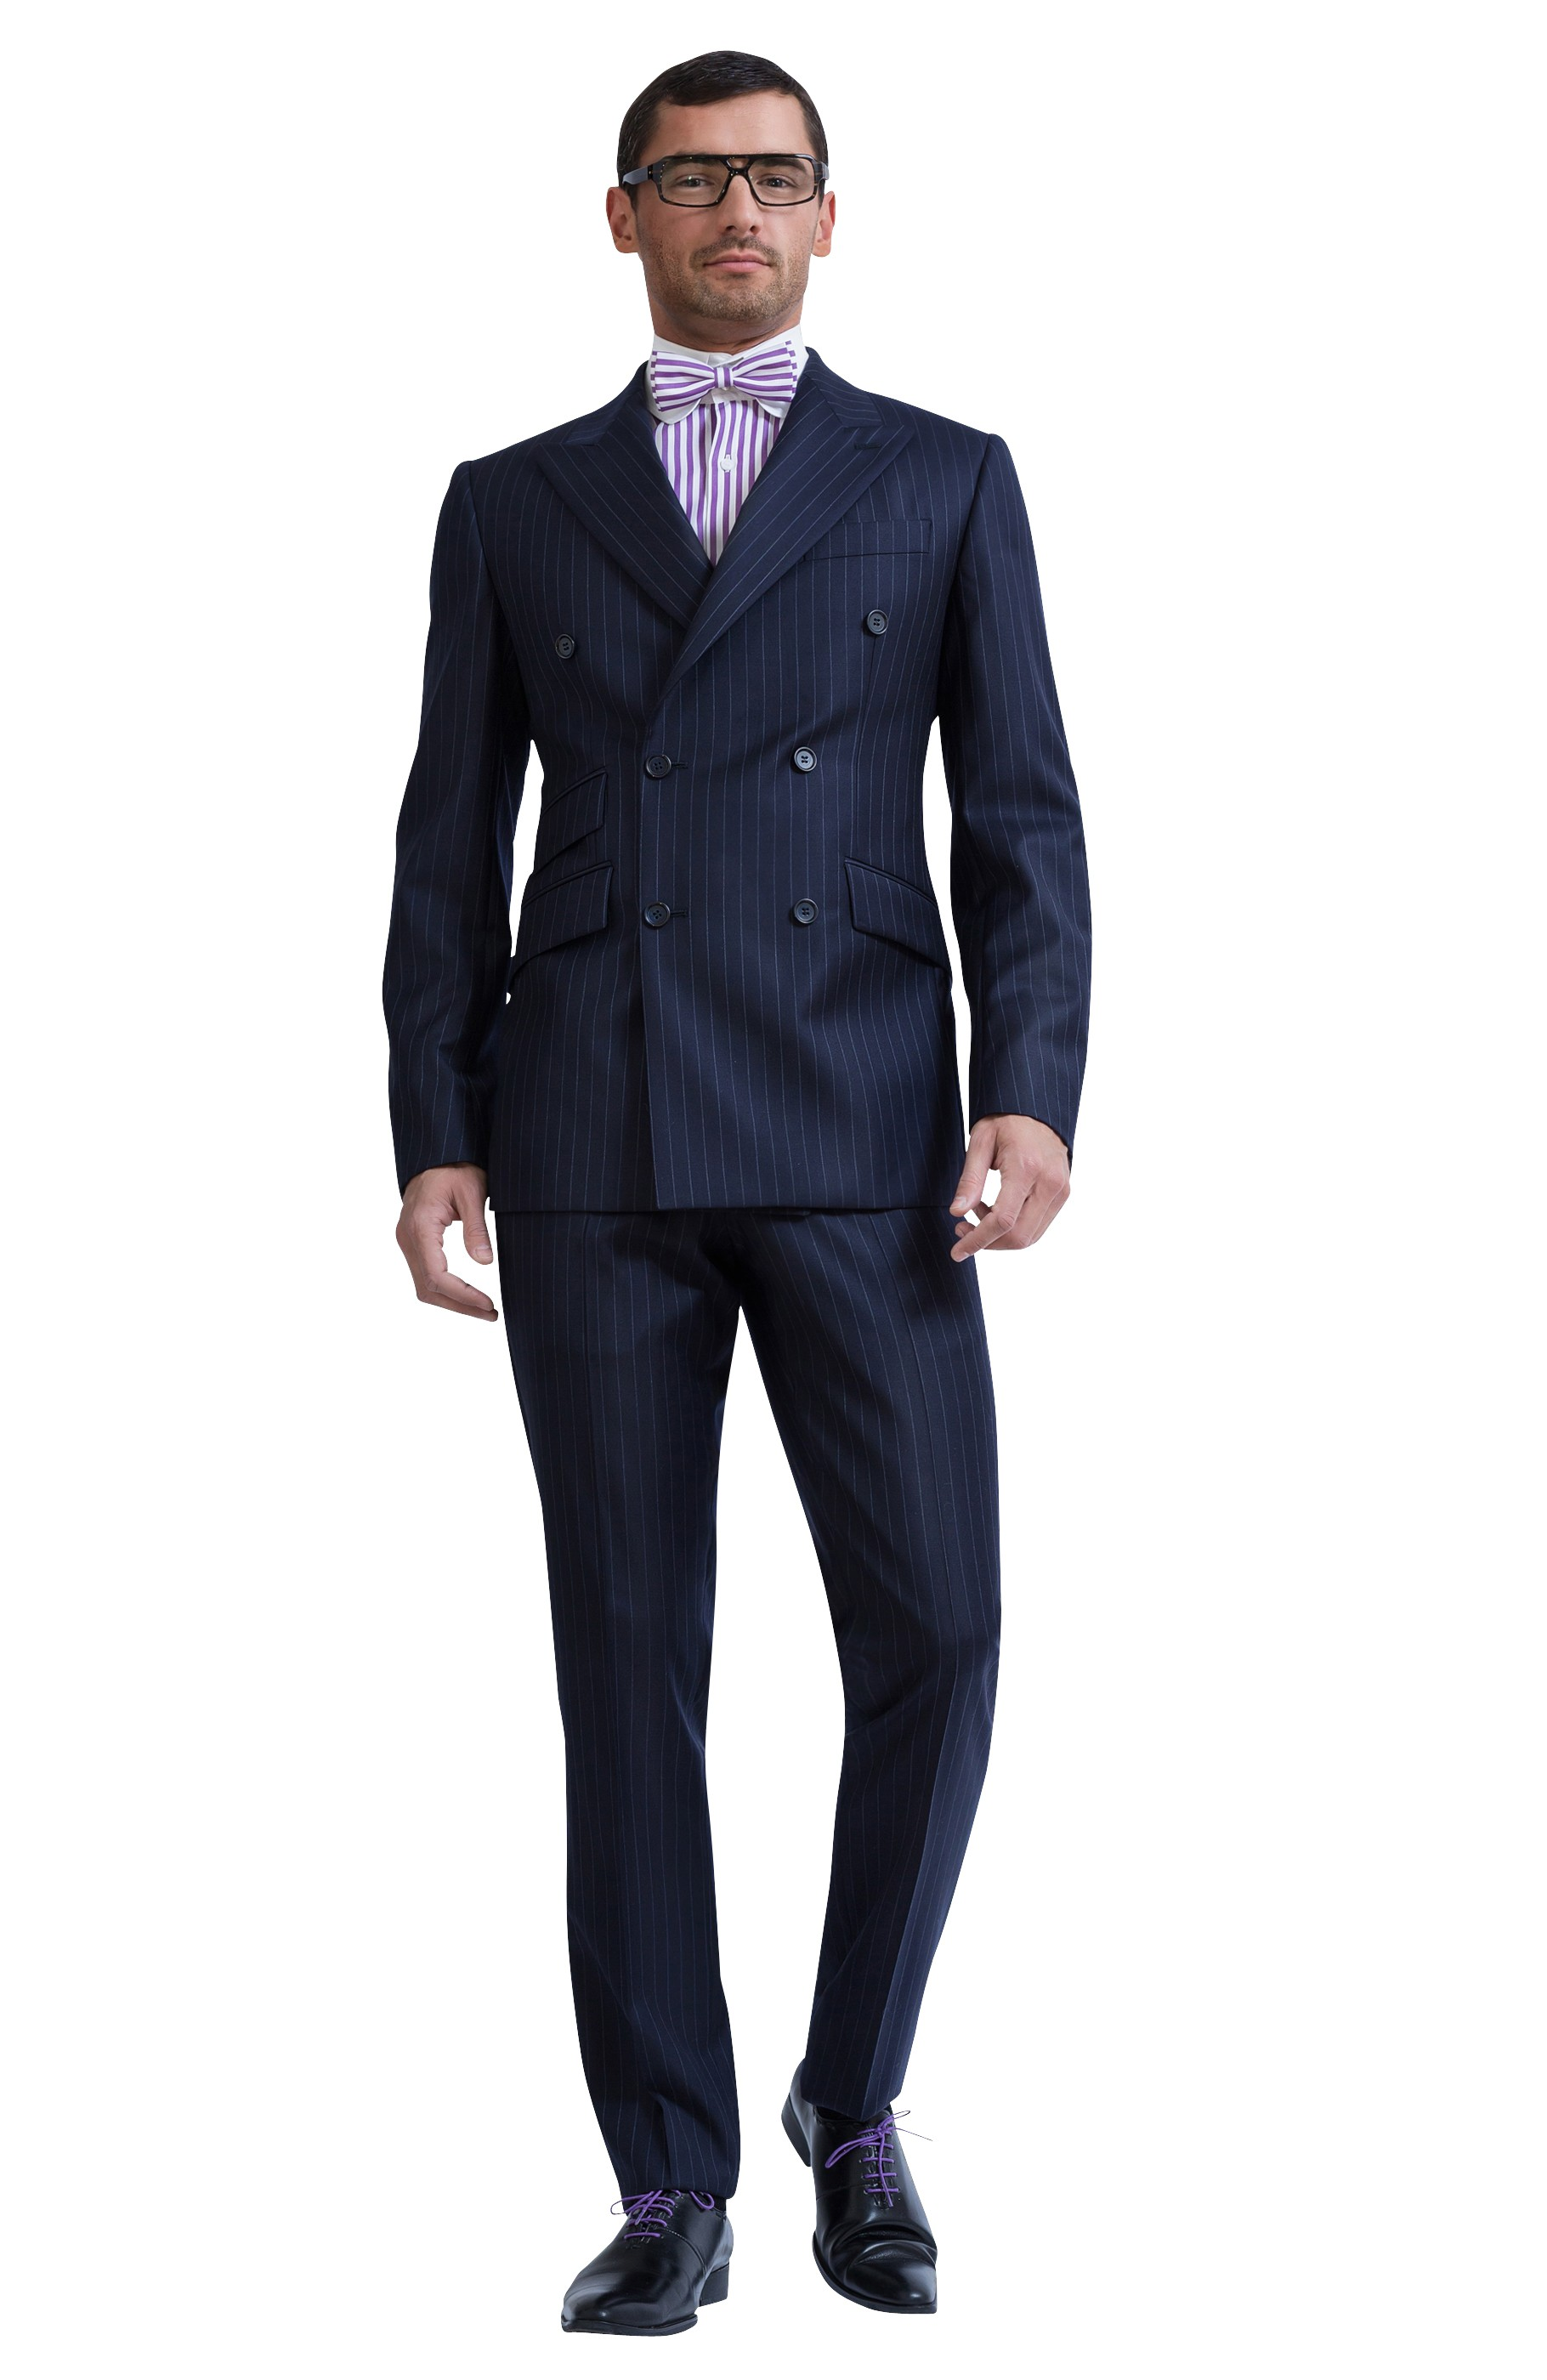 NAVY BLUE DOUBLE-BREASTED WOVEN WOOL SUIT Majesté Couture Paris